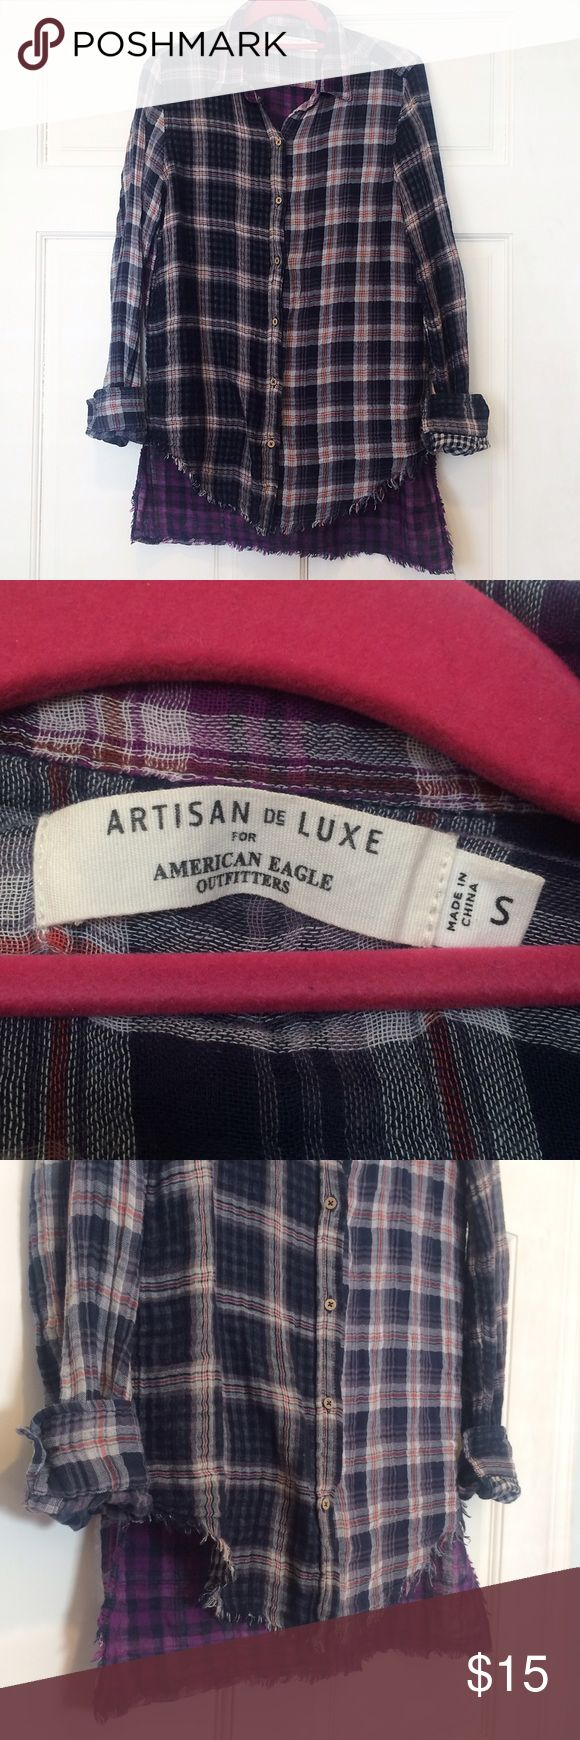 American Eagle Asymmetric Hem Flannel Tunic Artisans de Luxe for American Eagle Outfitters Asymmetric Hem Plaid Flannel Top. Gently used- great condition! Adorable wooden buttons! 100% cotton- very soft! No trades, offers welcome! ☺️ American Eagle Outfitters Tops Button Down Shirts